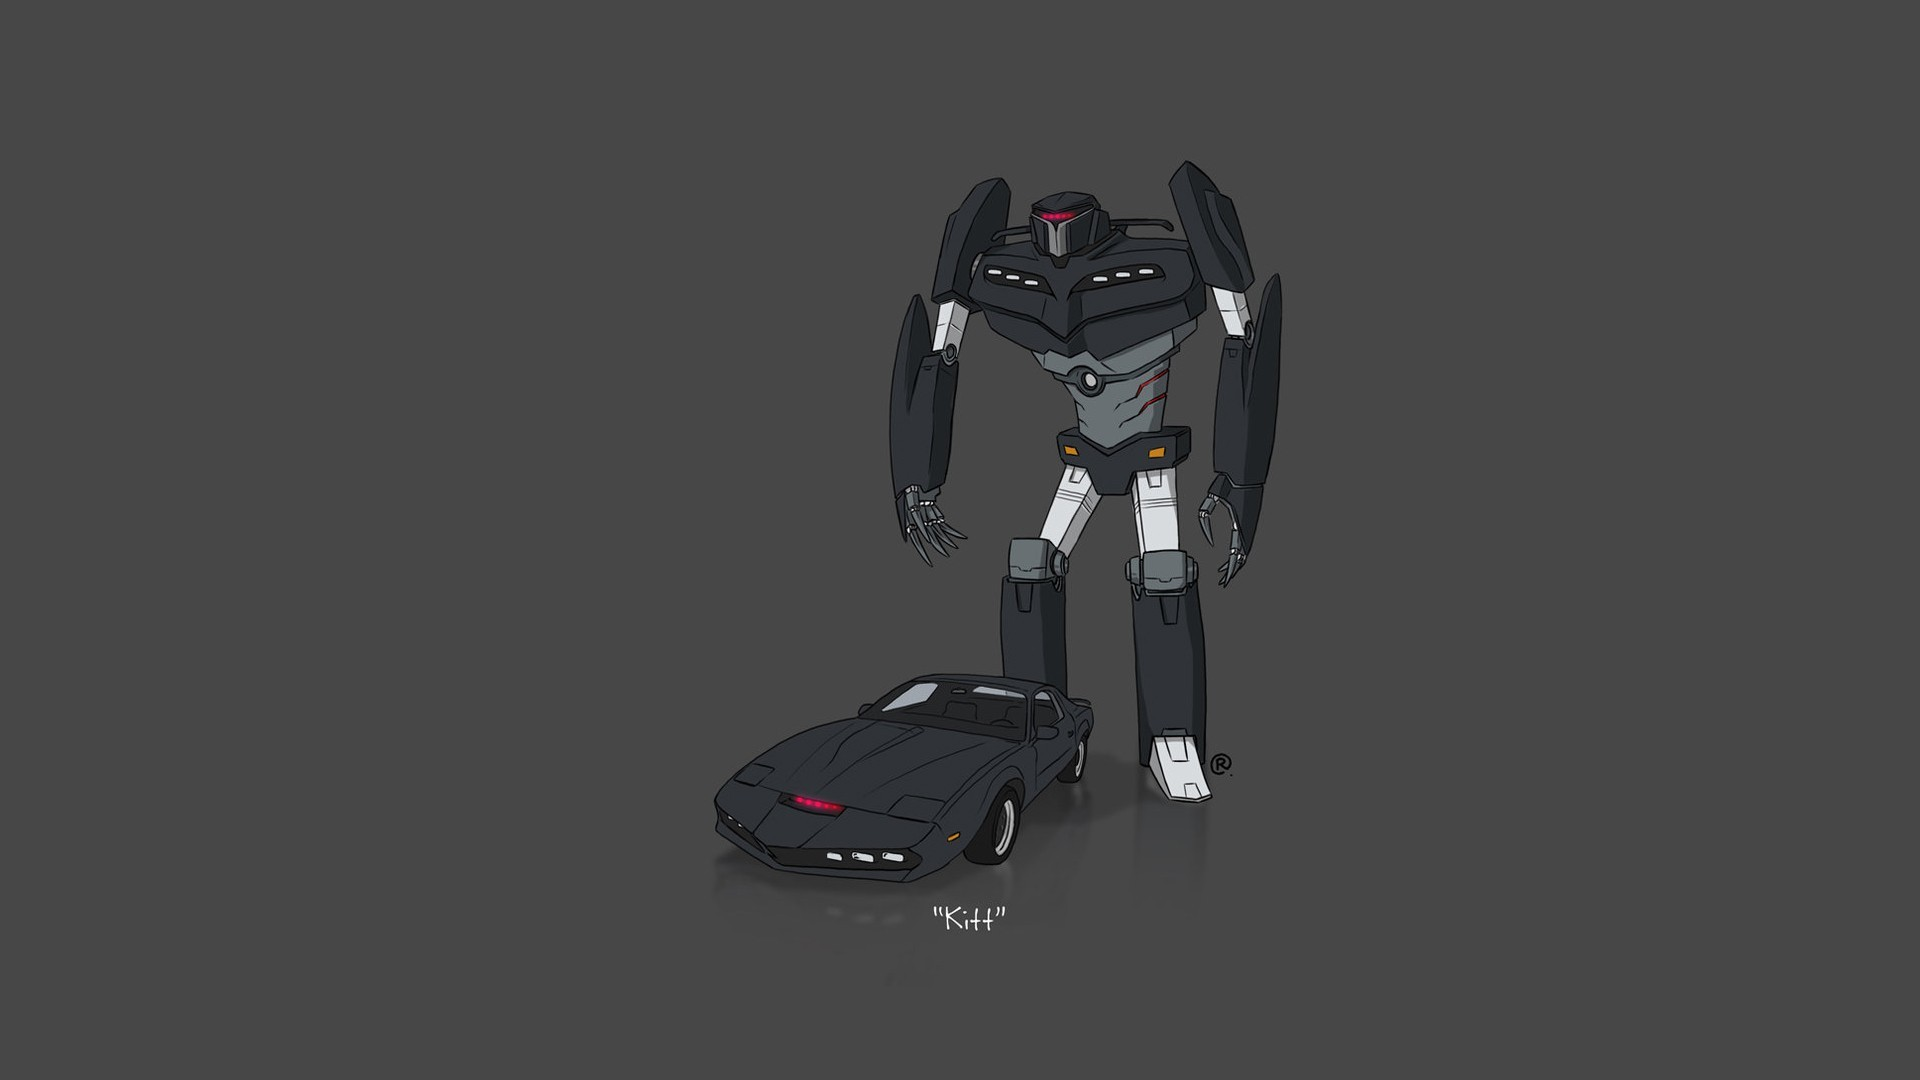 1920x1080 car, Transformers, Minimalism, K.I.T.T., Pontiac, Knight Rider Wallpapers  HD / Desktop and Mobile Backgrounds